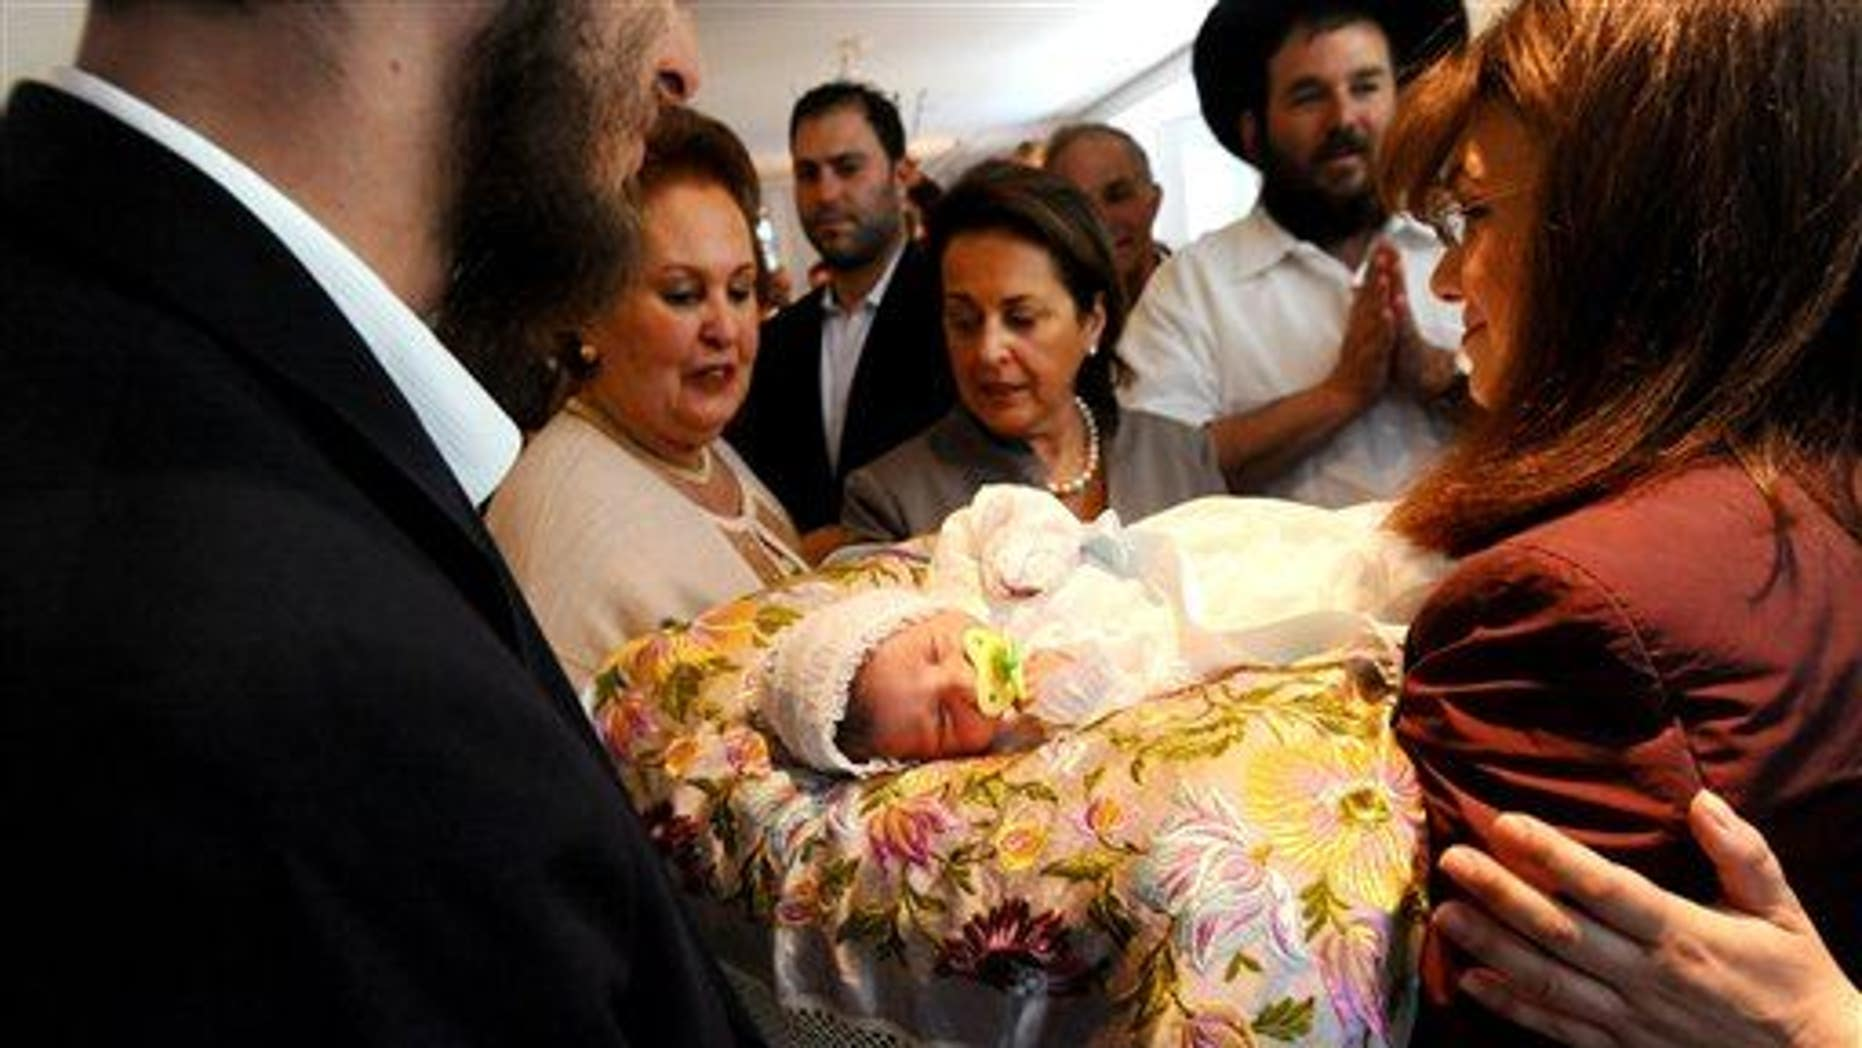 A baby rests on a pillow surrounded by family, immediately following his bris, a Jewish circumcision ceremony, in San Francisco.